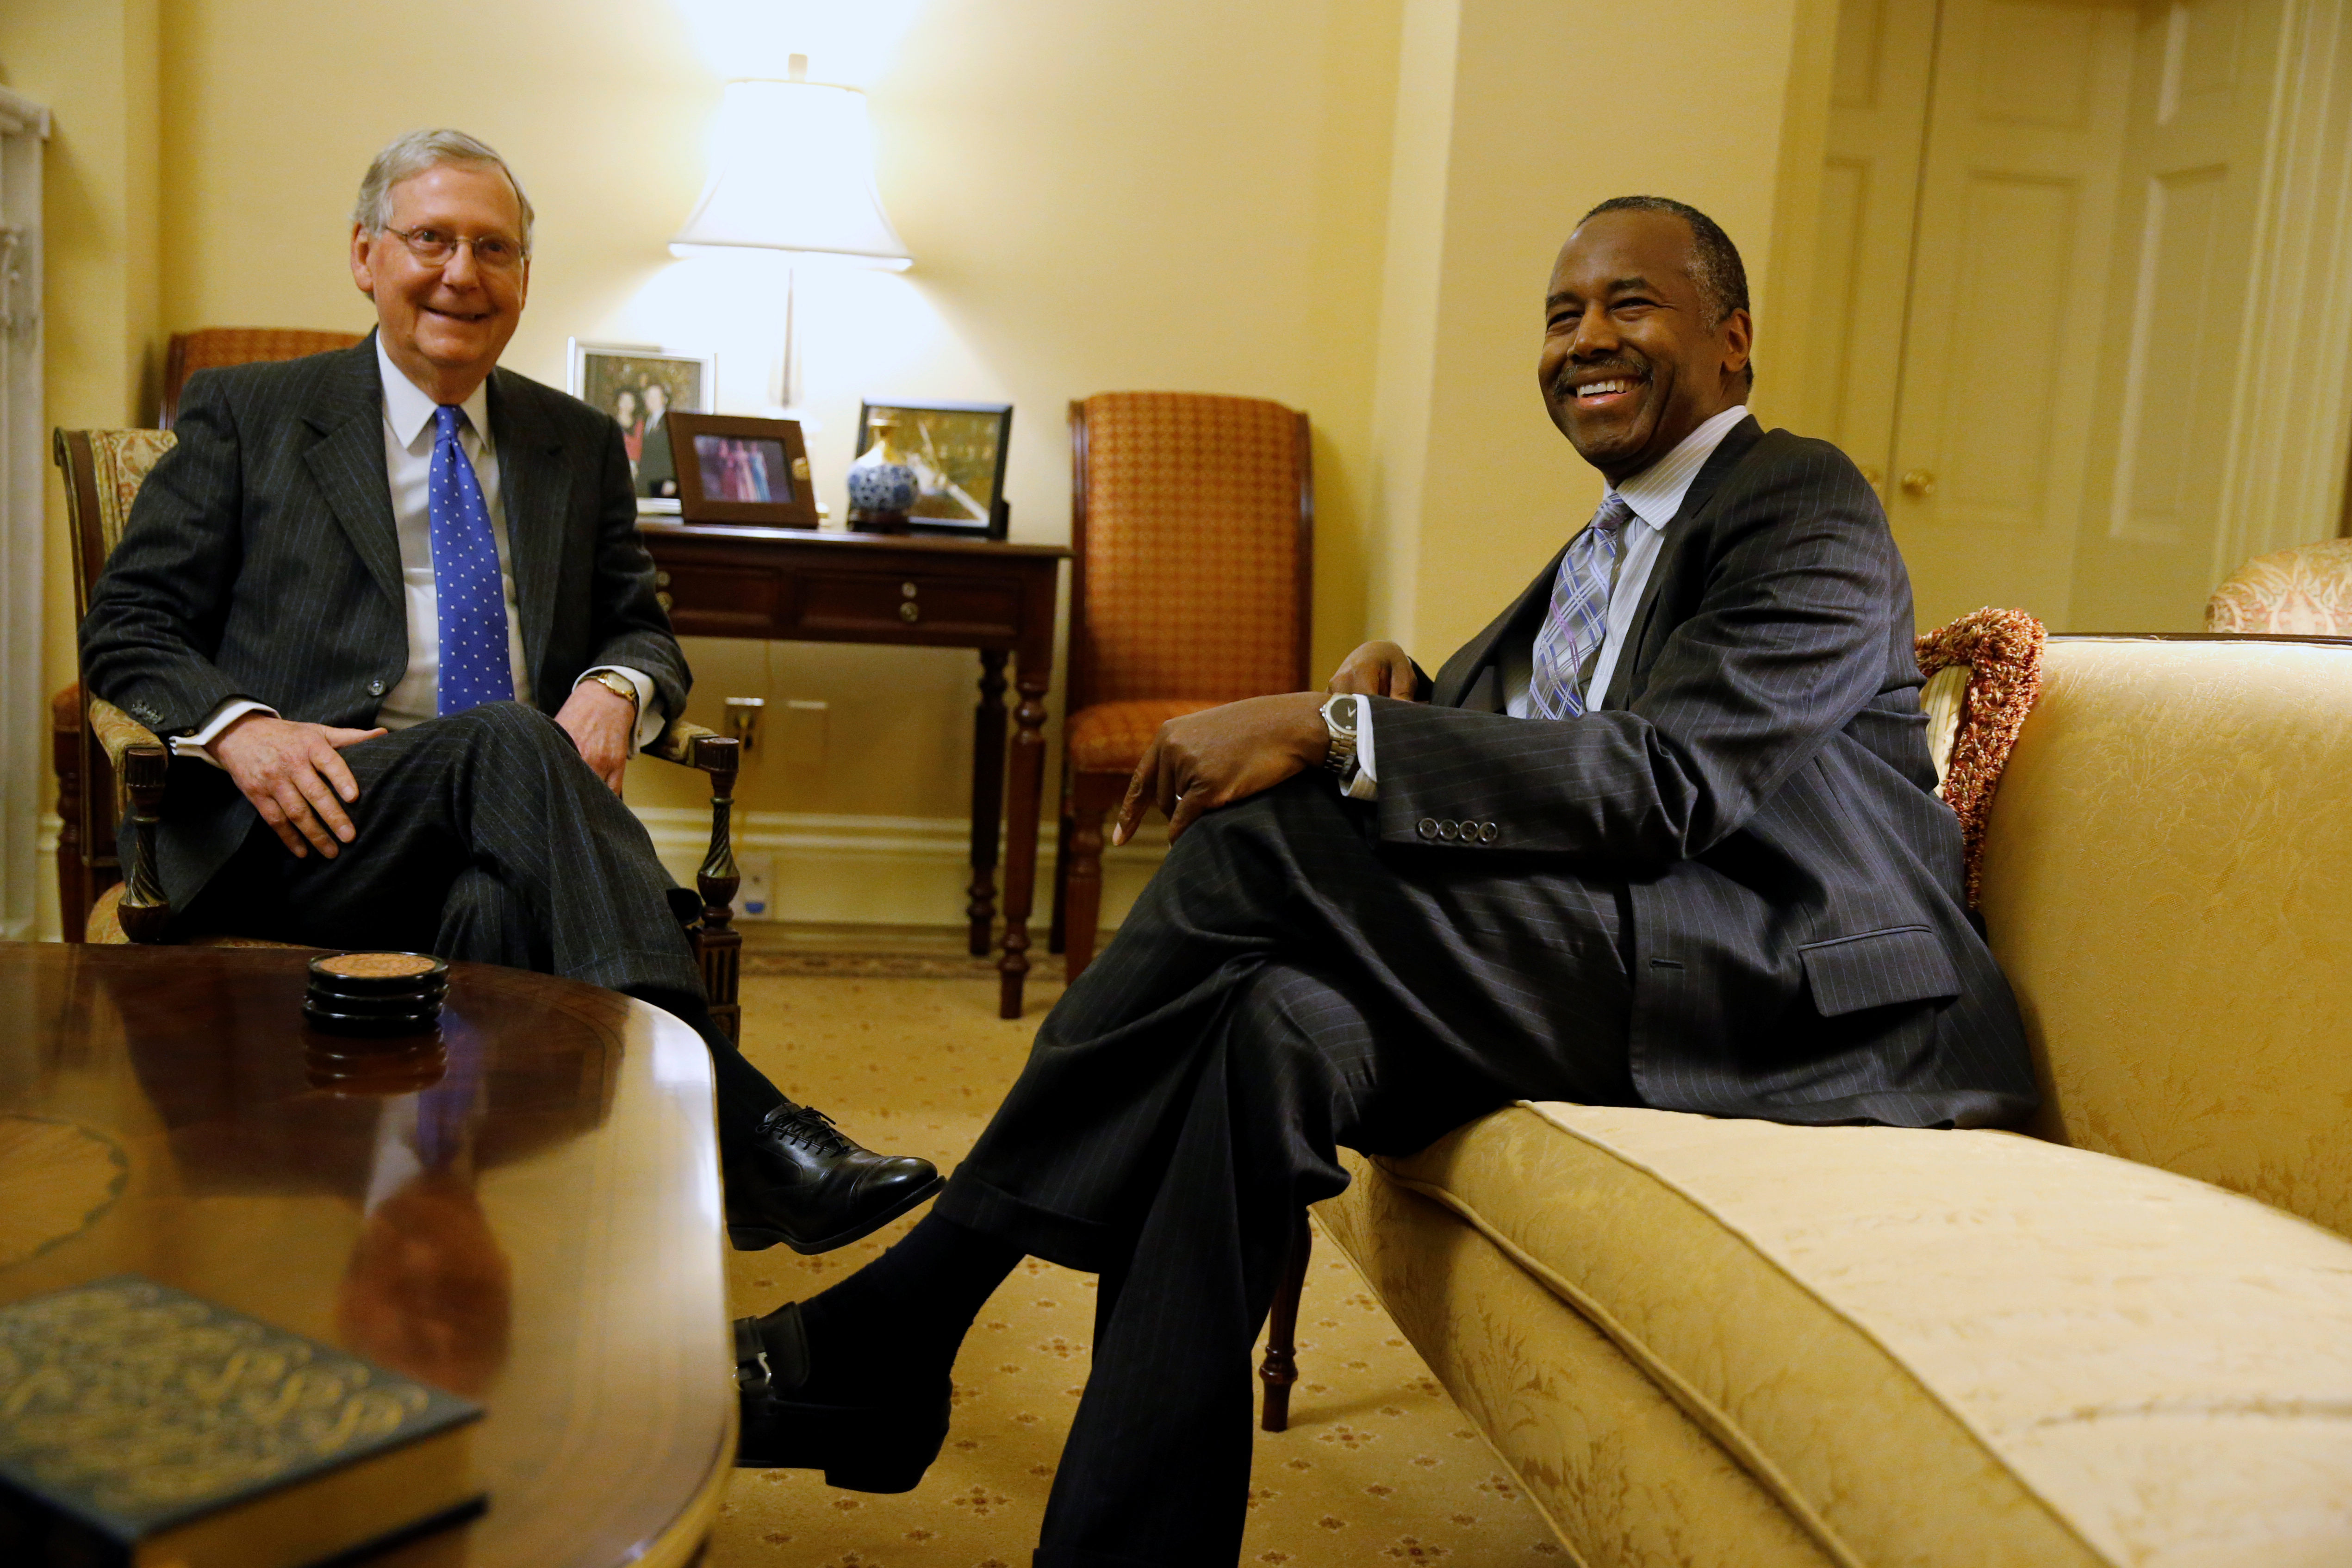 McConnell welcomes Carson in his office at the Capitol in Washington